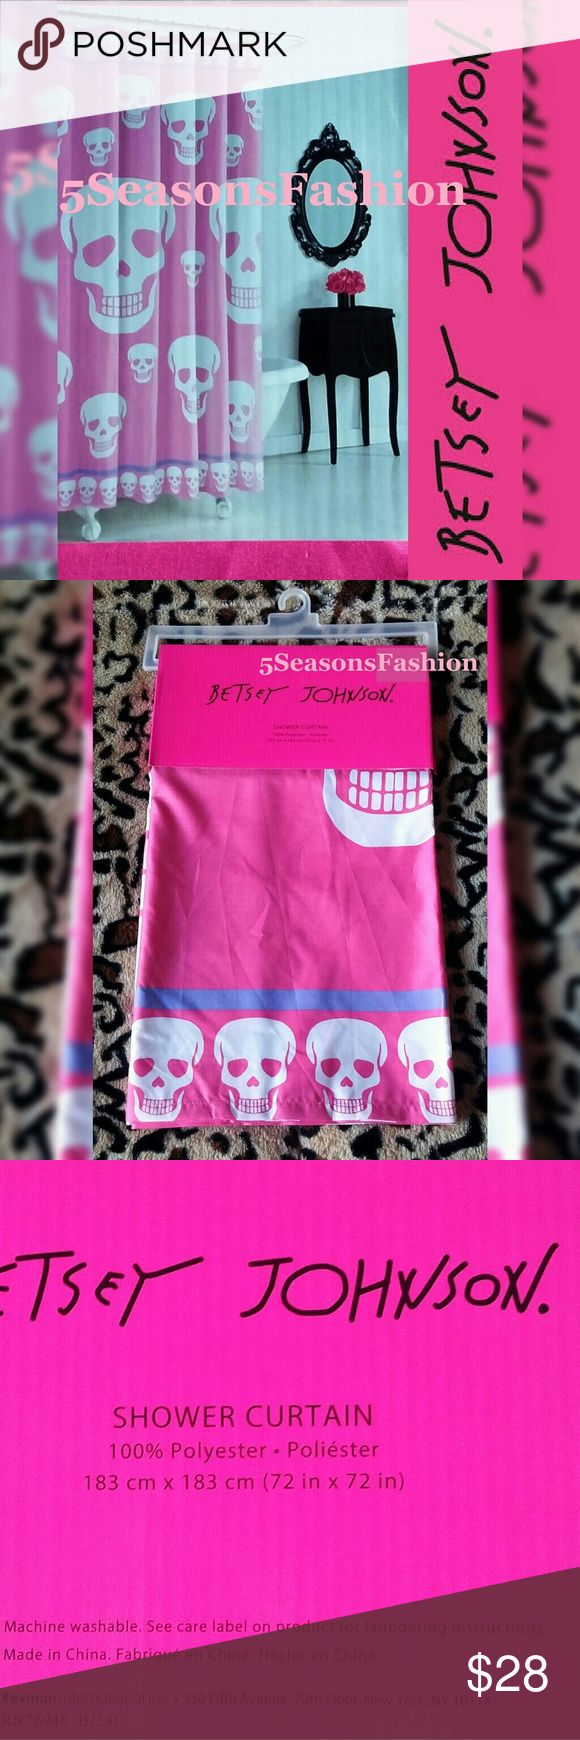 "BETSEY JOHNSON Skull Shower Curtain Pink Halloween 🌸Last one in stock🌸 BRAND NEW WITH TAGS! Decorate your bathroom in style with this fab Betsey Johnson shower curtain. 72""x72"" 100% Polyester fabric. Pink, white and purple color combination. Glam Halloween bathroom decor. Also perfect for all year round 💀💕💋 Betsey Johnson Other"